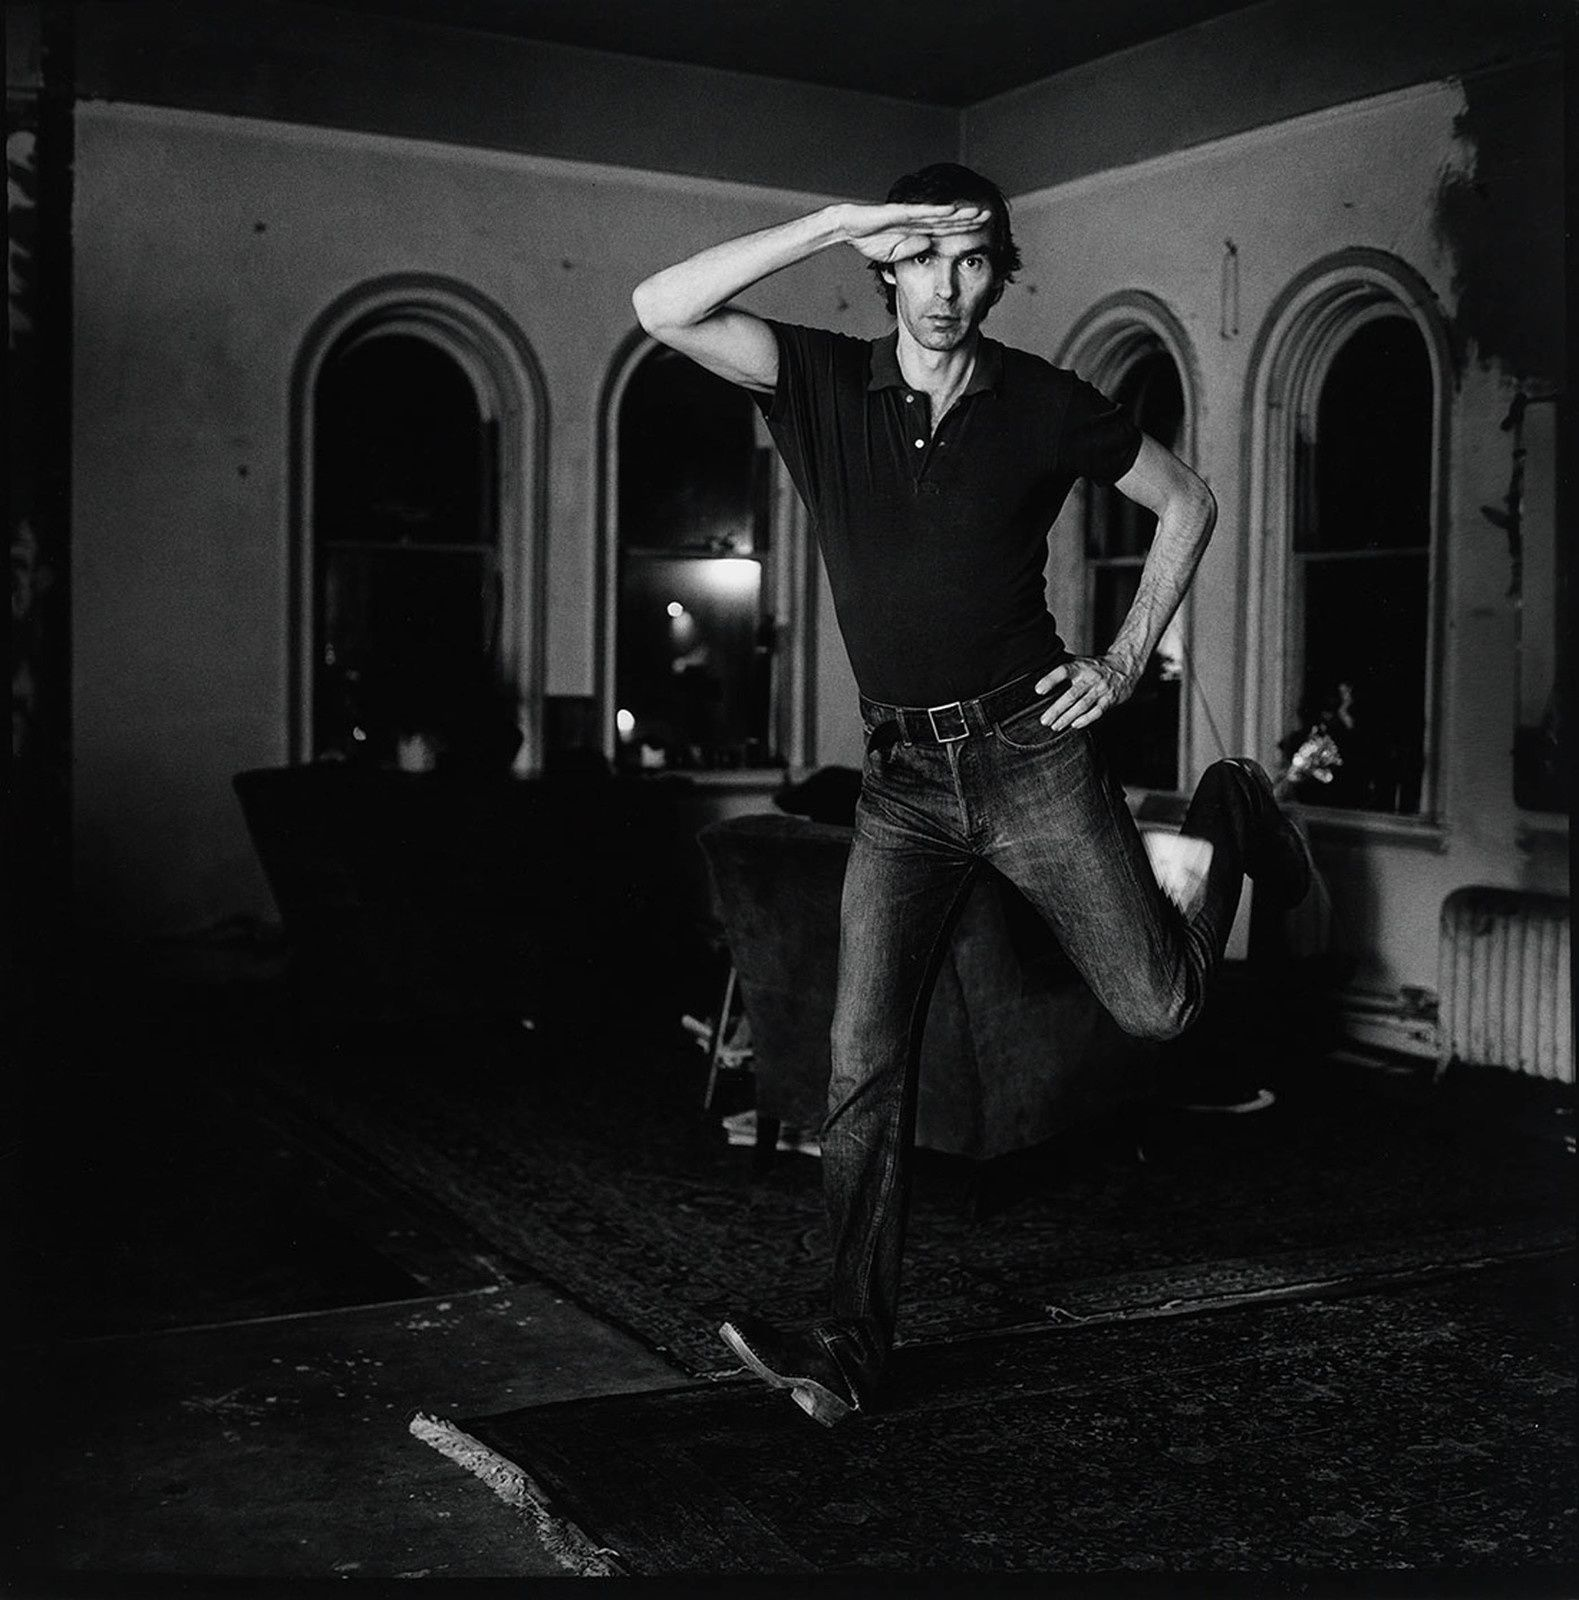 Self-Portrait Jumping (1) 1974 Peter Hujar Tirage gélatino-argentique, The Morgan Library & Museum, achat en 2013 grâce au Charina Endowment Fund © Peter Hujar Archive, LLC, courtesy Pace/MacGill Gallery, New York and Fraenkel Gallery, San Francisco